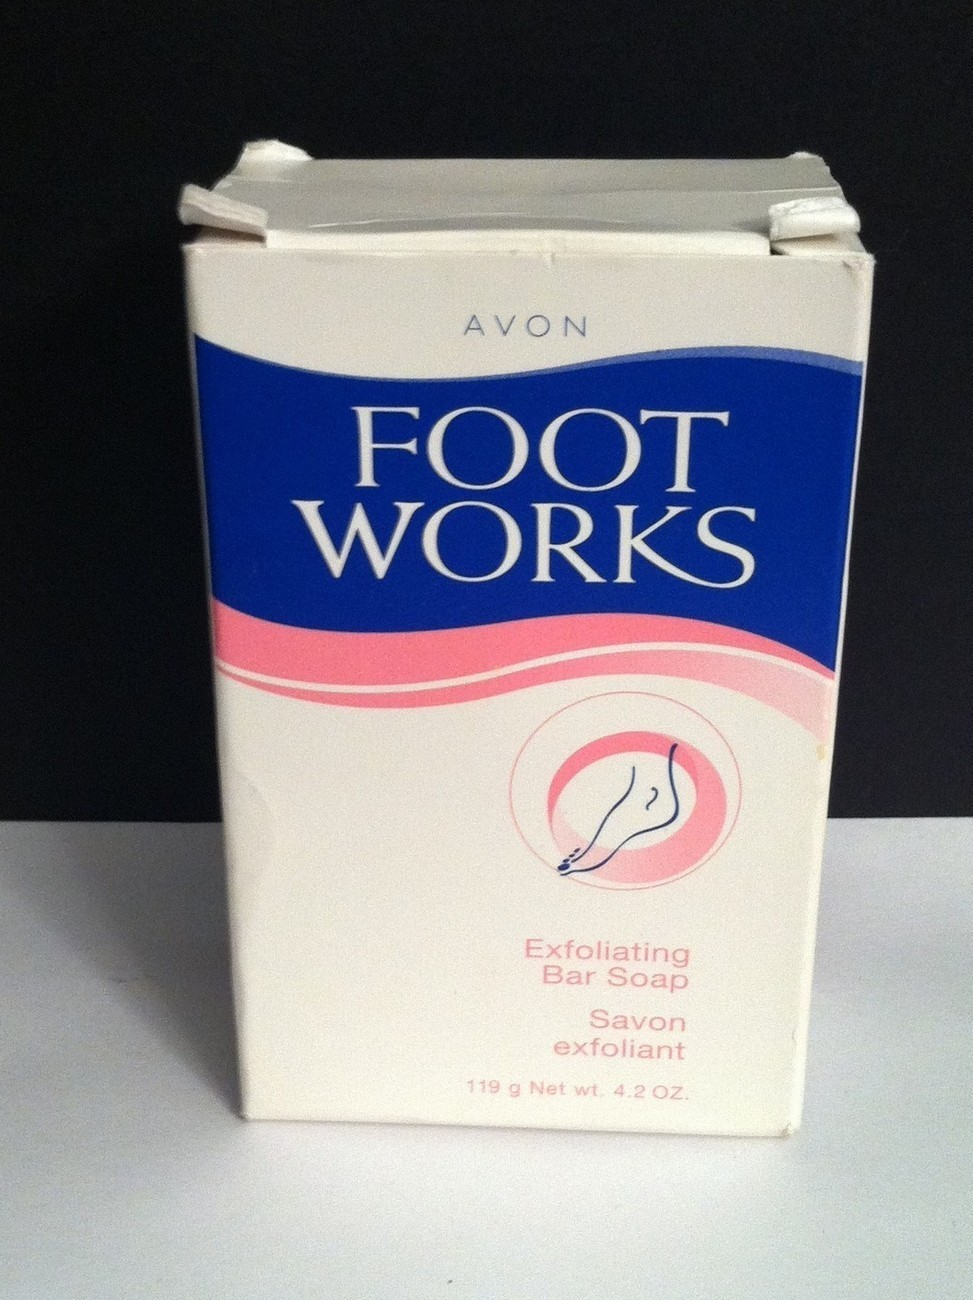 Avon_footworks_exfoliating_foot_bar_soap